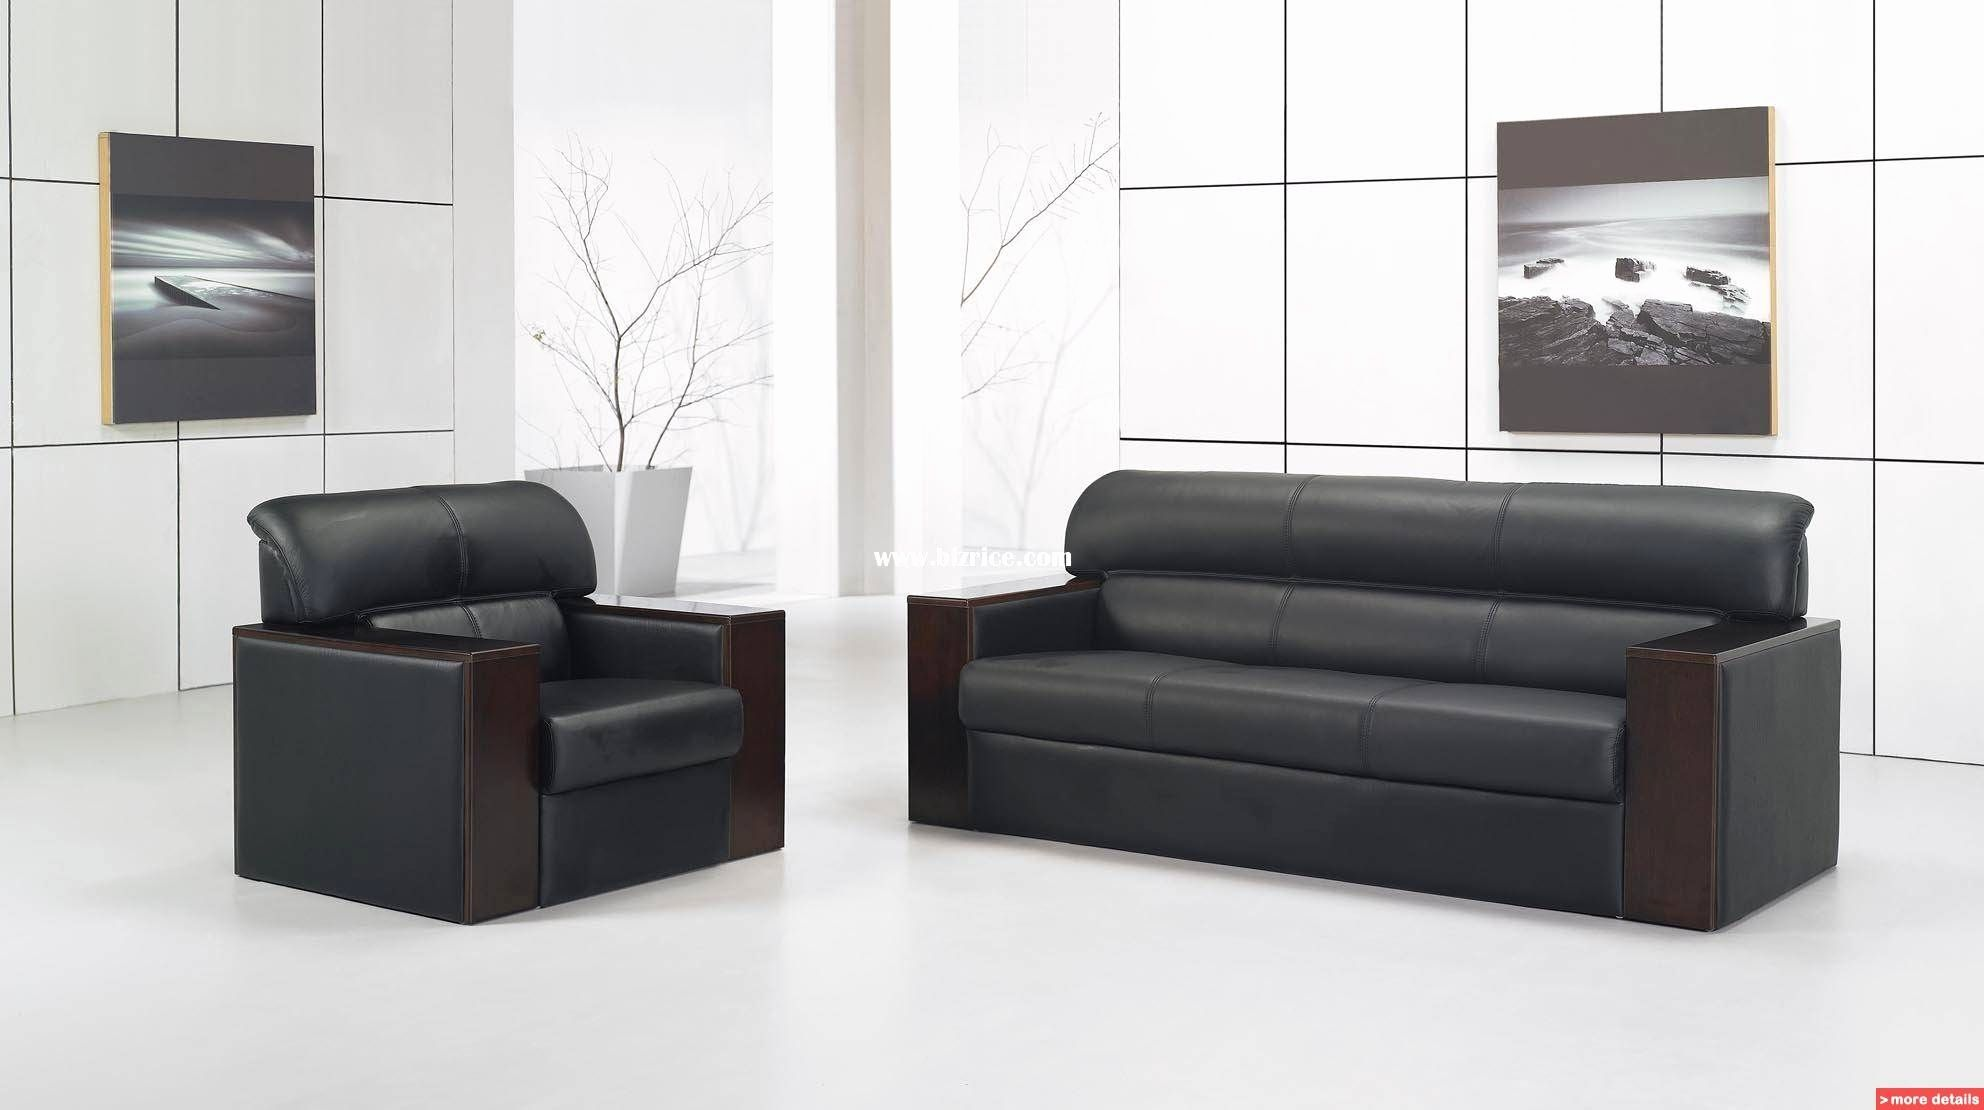 Best Of Office Reception Sofas Art Office Reception Sofas Awesome